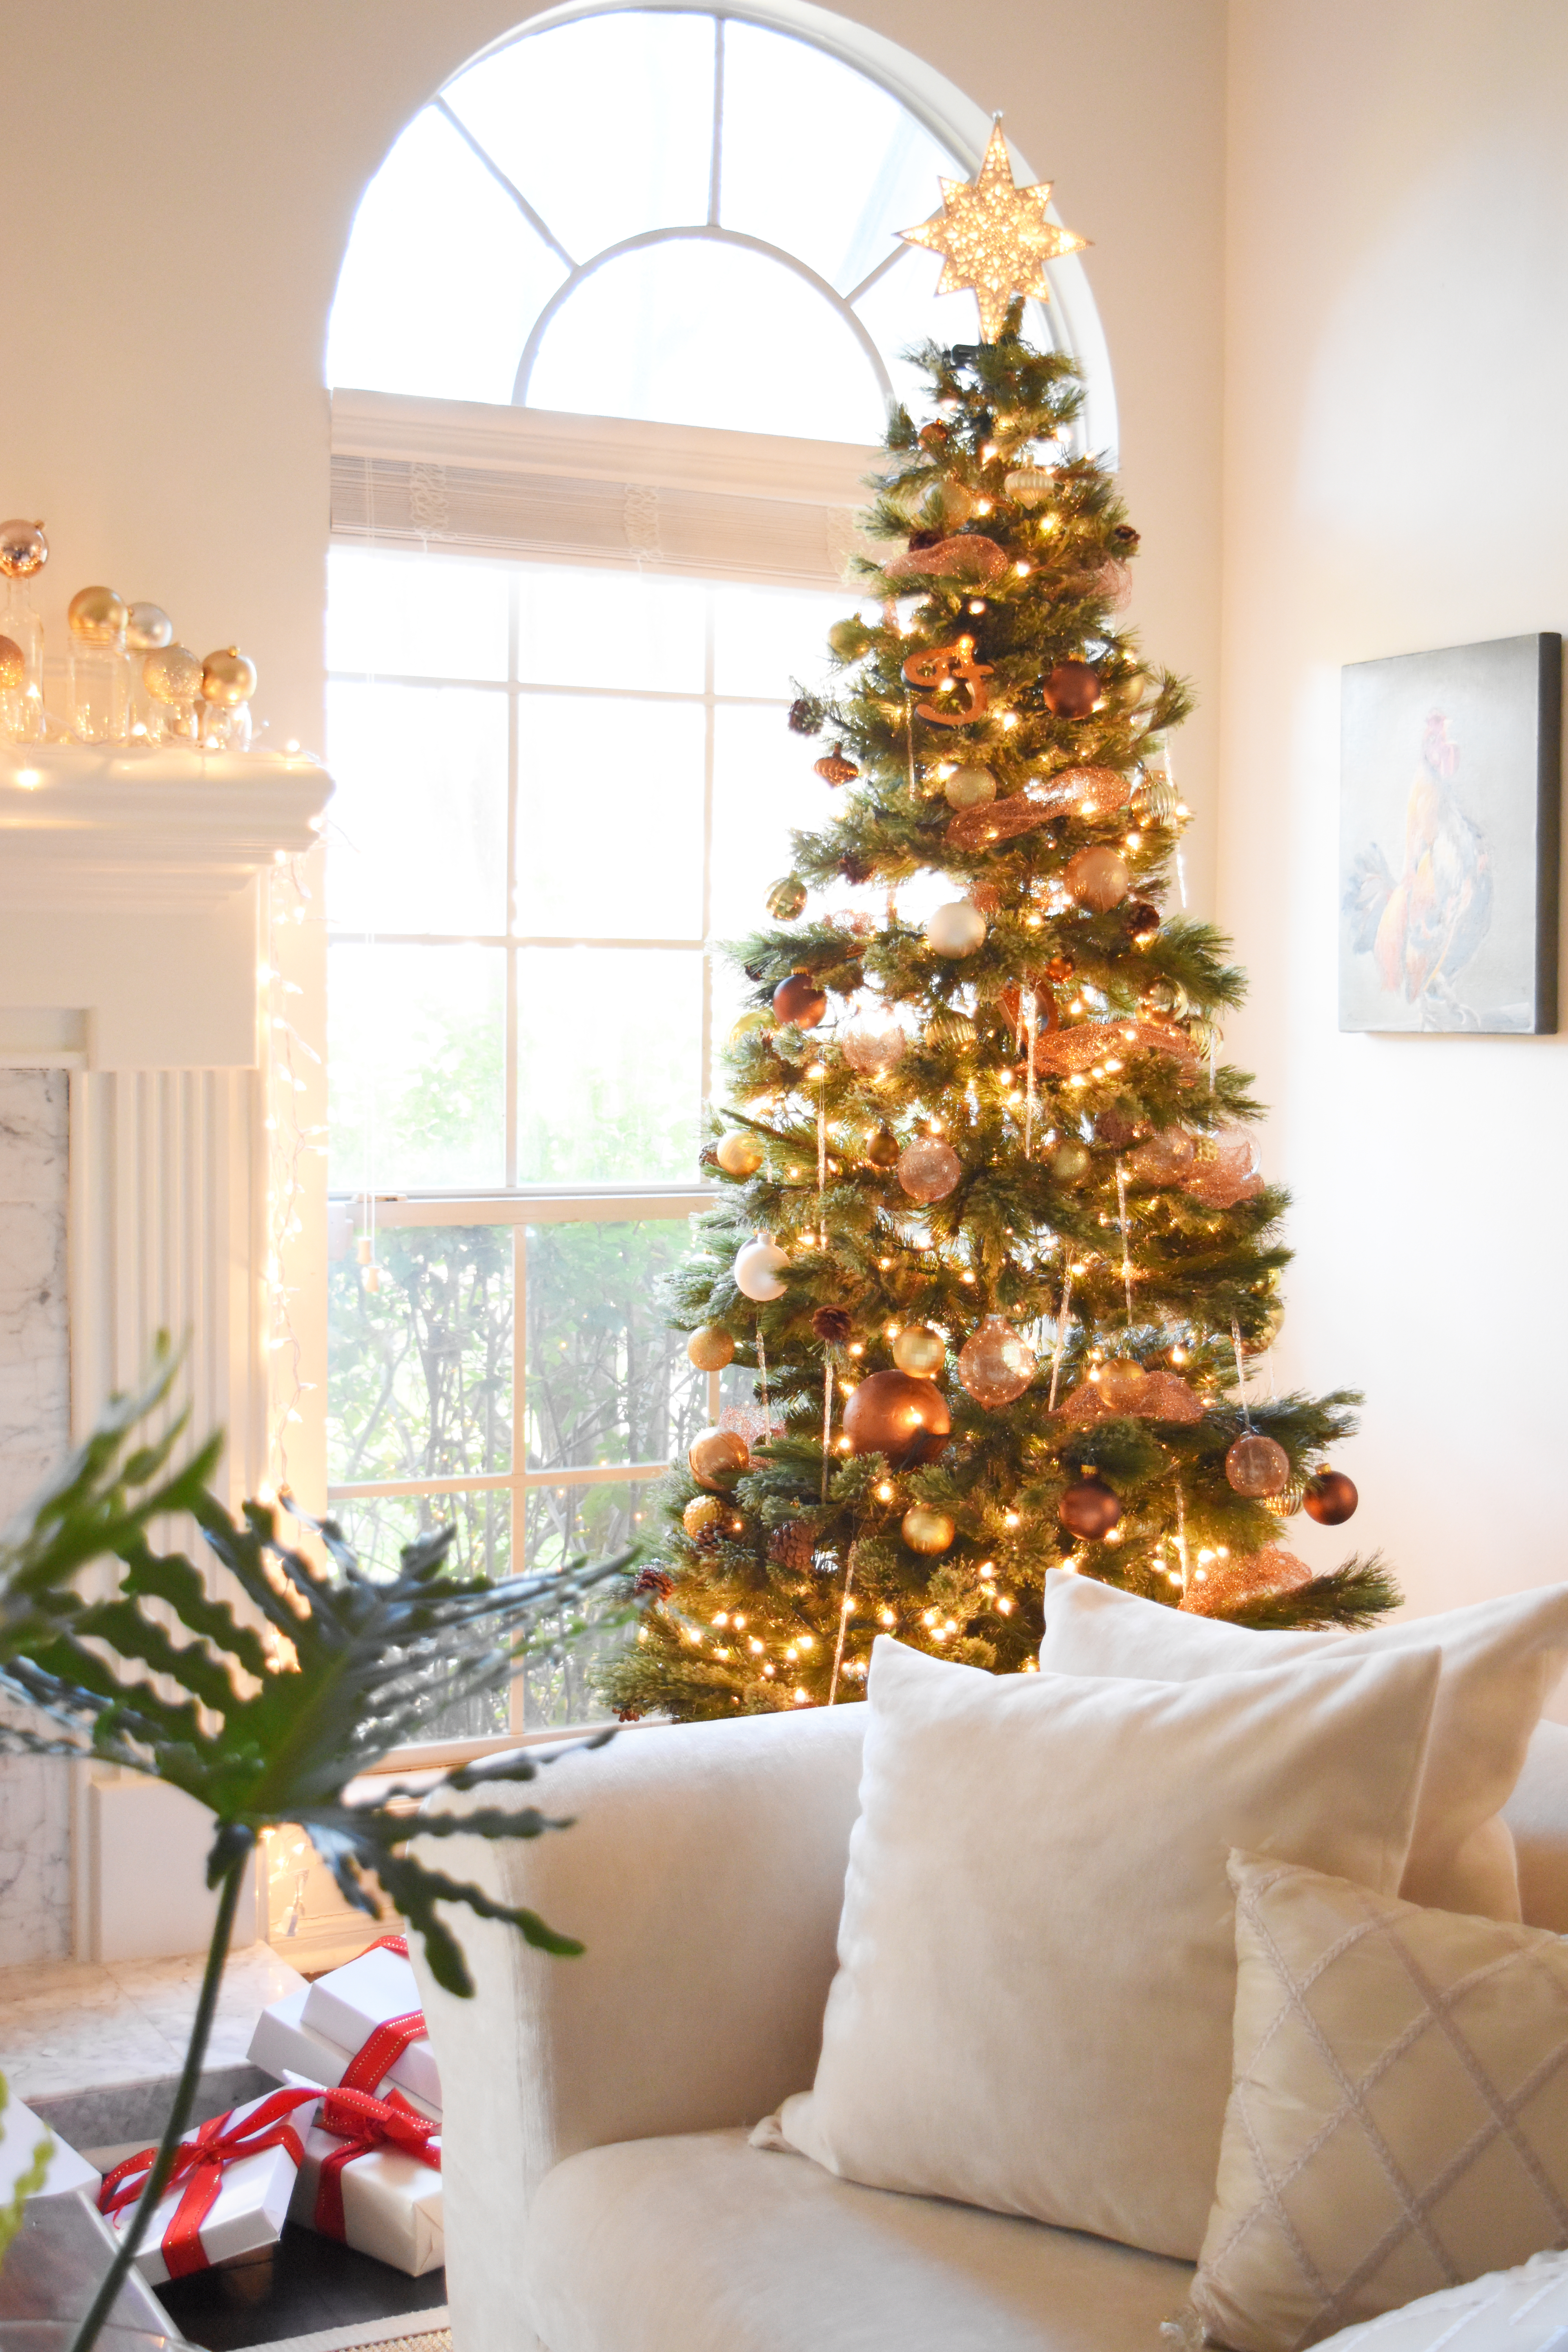 Diy copper mesh garland for your christmas tree once again my to make them you will only need to get a few copper scrubbing pads from your grocery store note 1 use scotch brite note 2 i had a hard time finding solutioingenieria Image collections